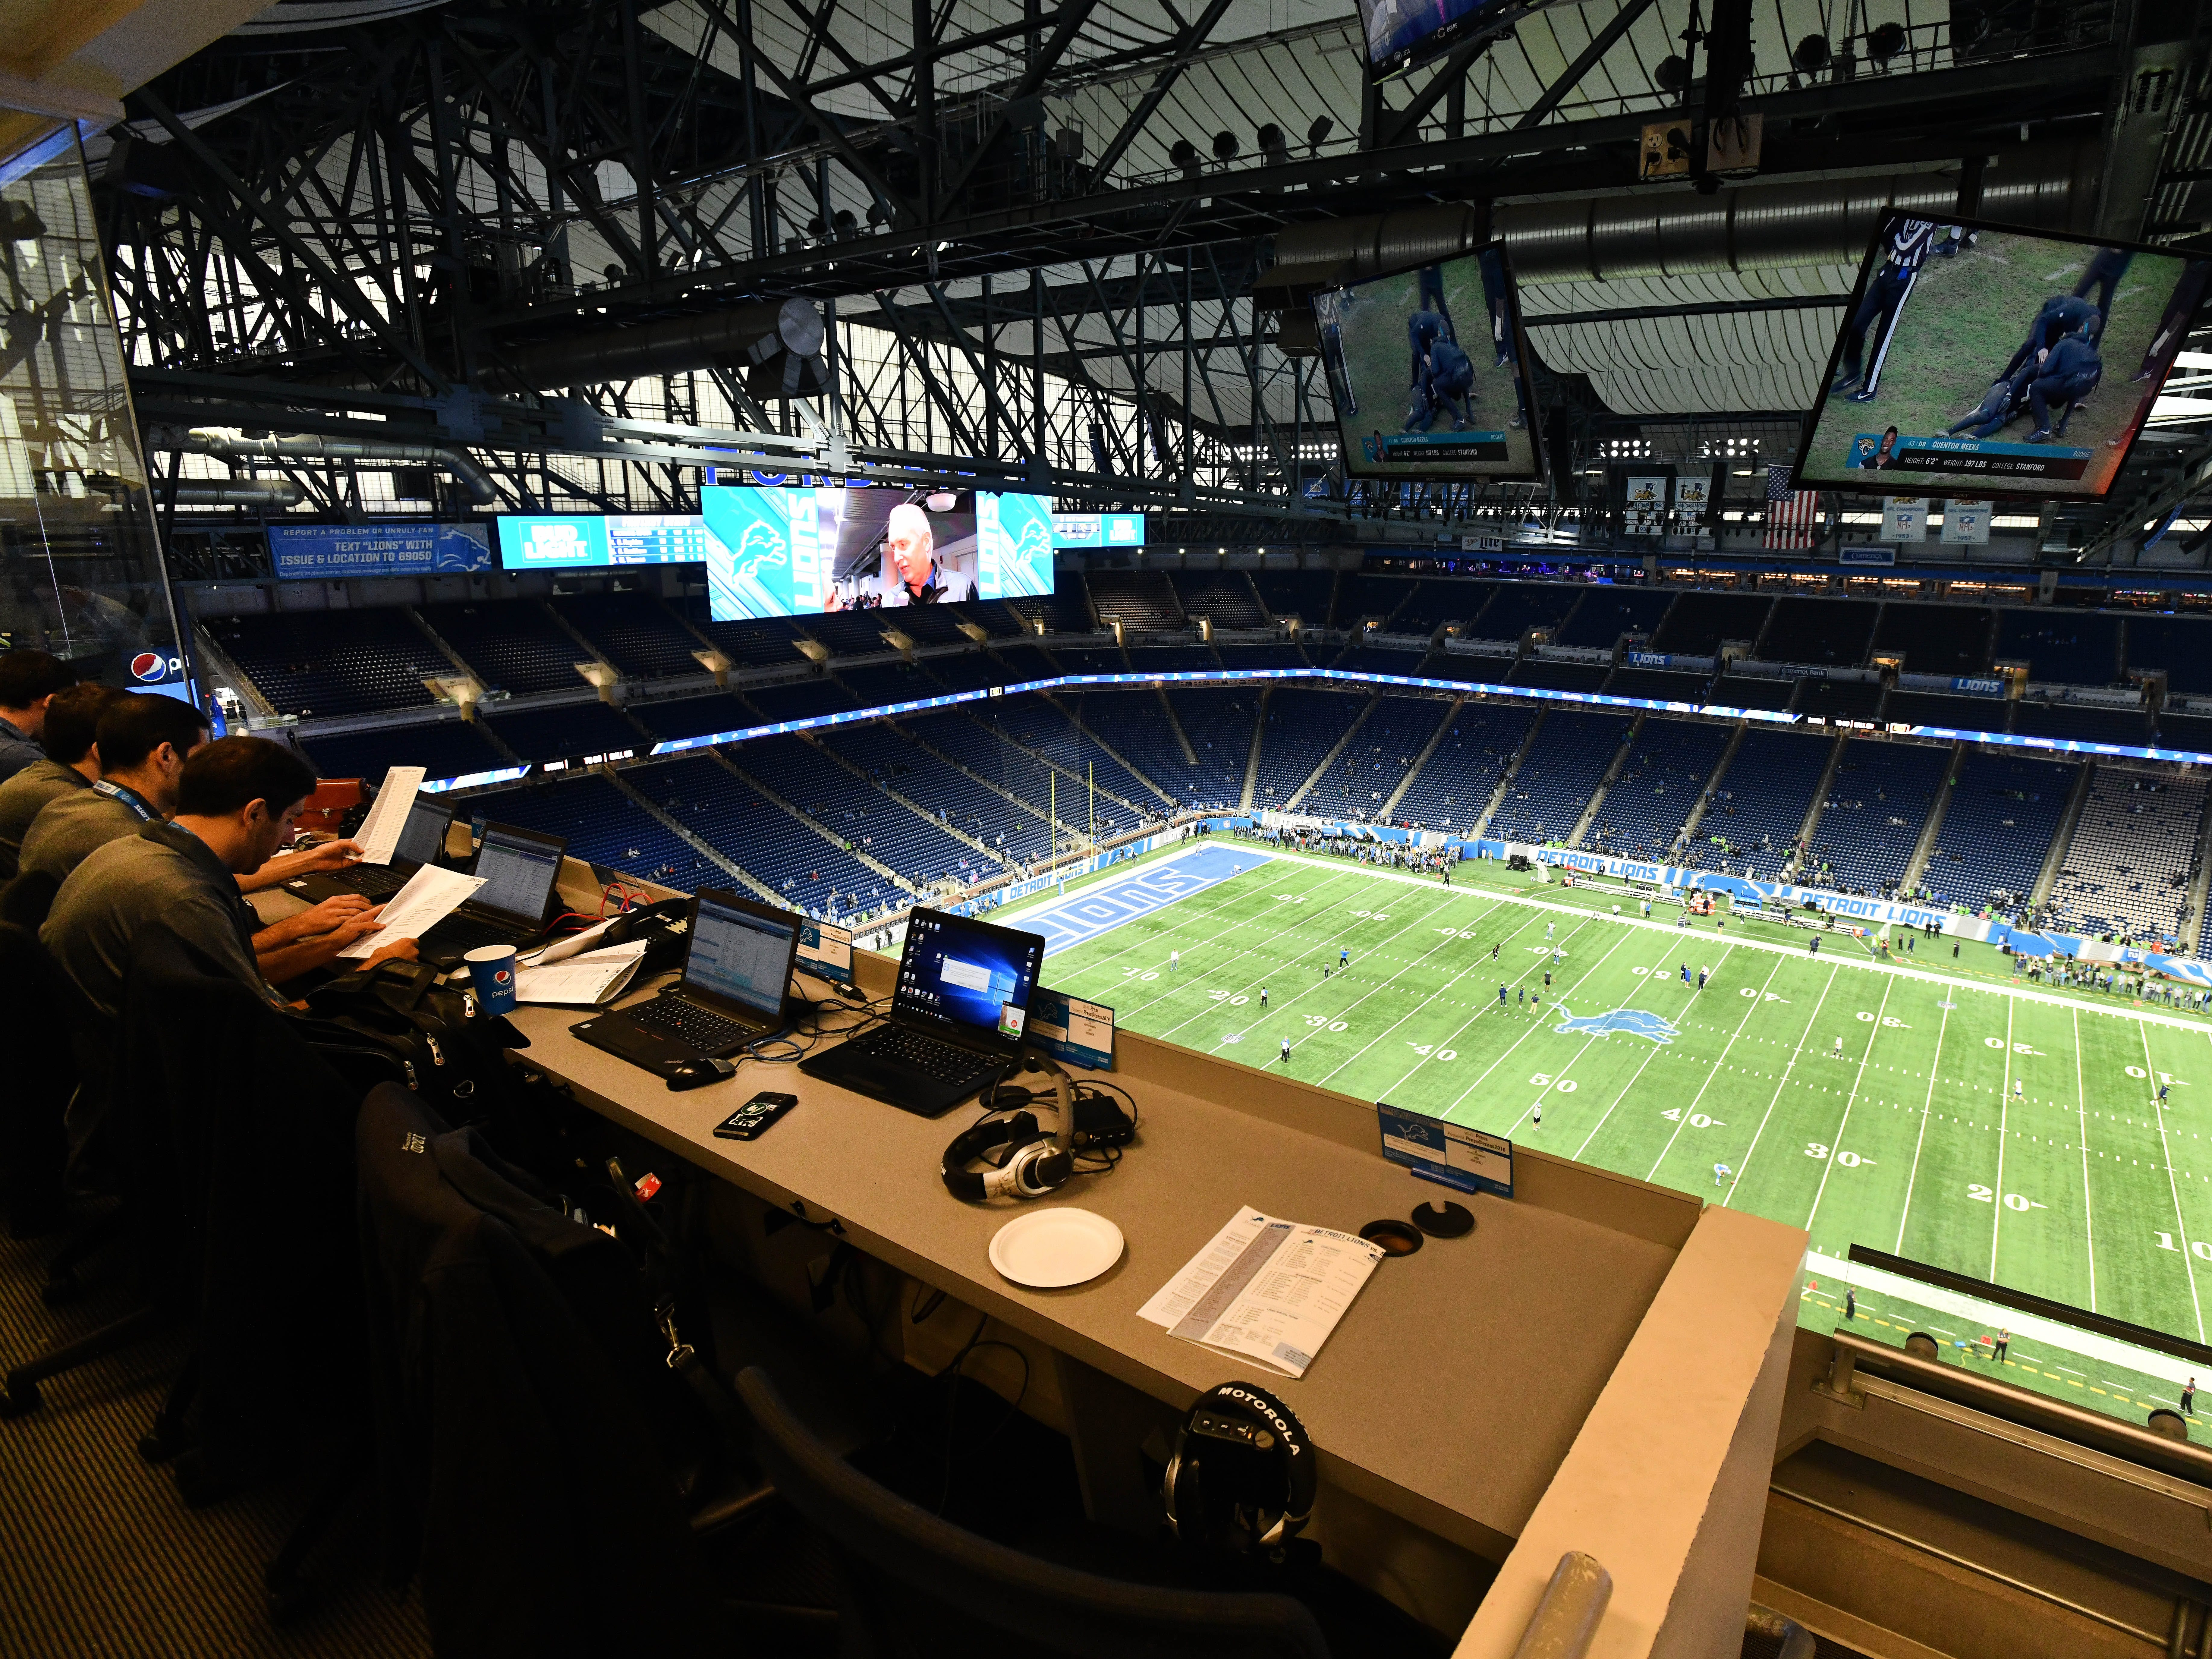 This is a view of Ford Field from the press box.